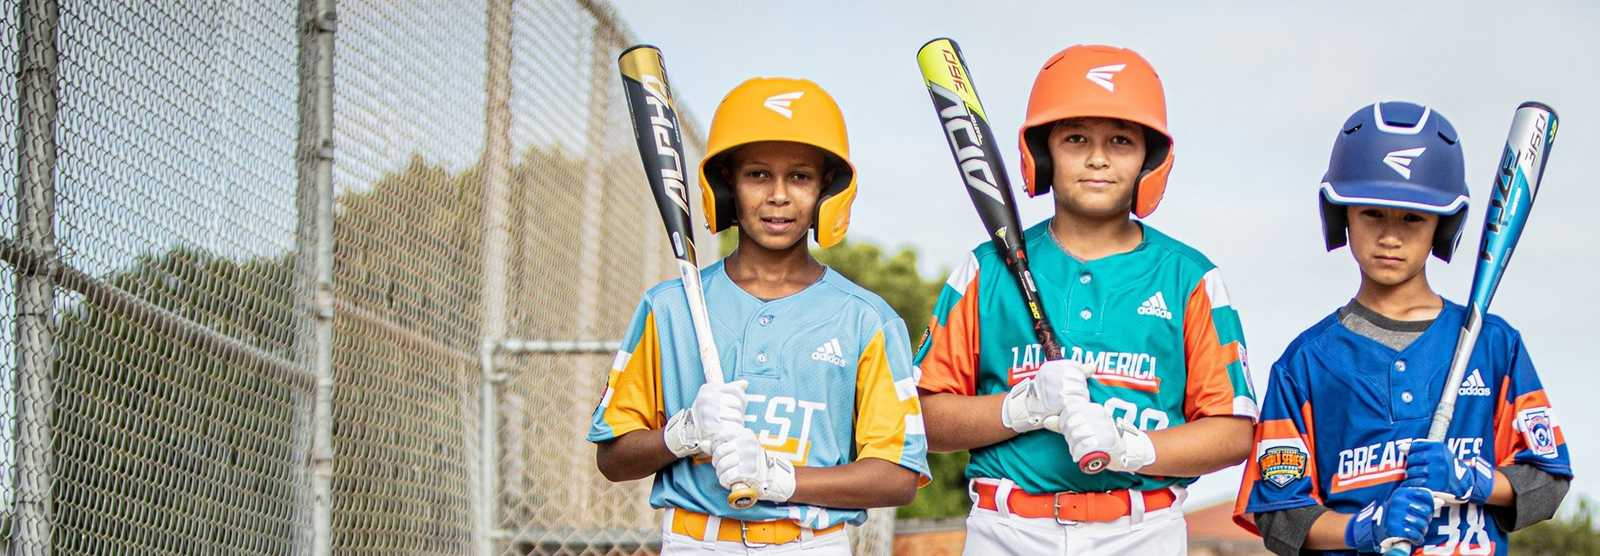 2019-little-league-baseball-world-series